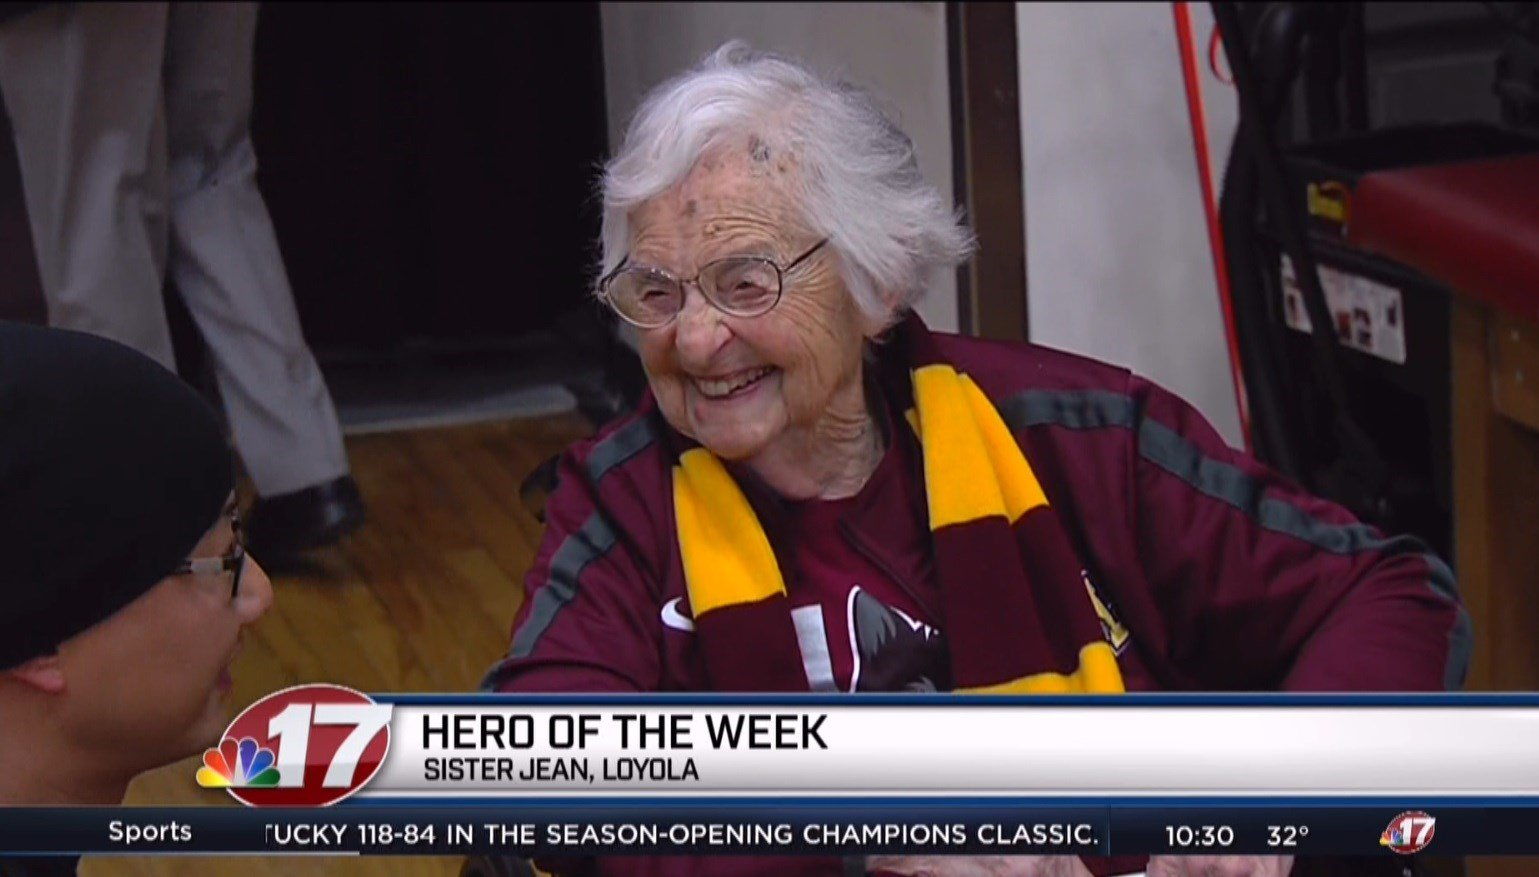 Sister Jean greets an admirer on Tuesday night before Loyola's home opener against UMKC.